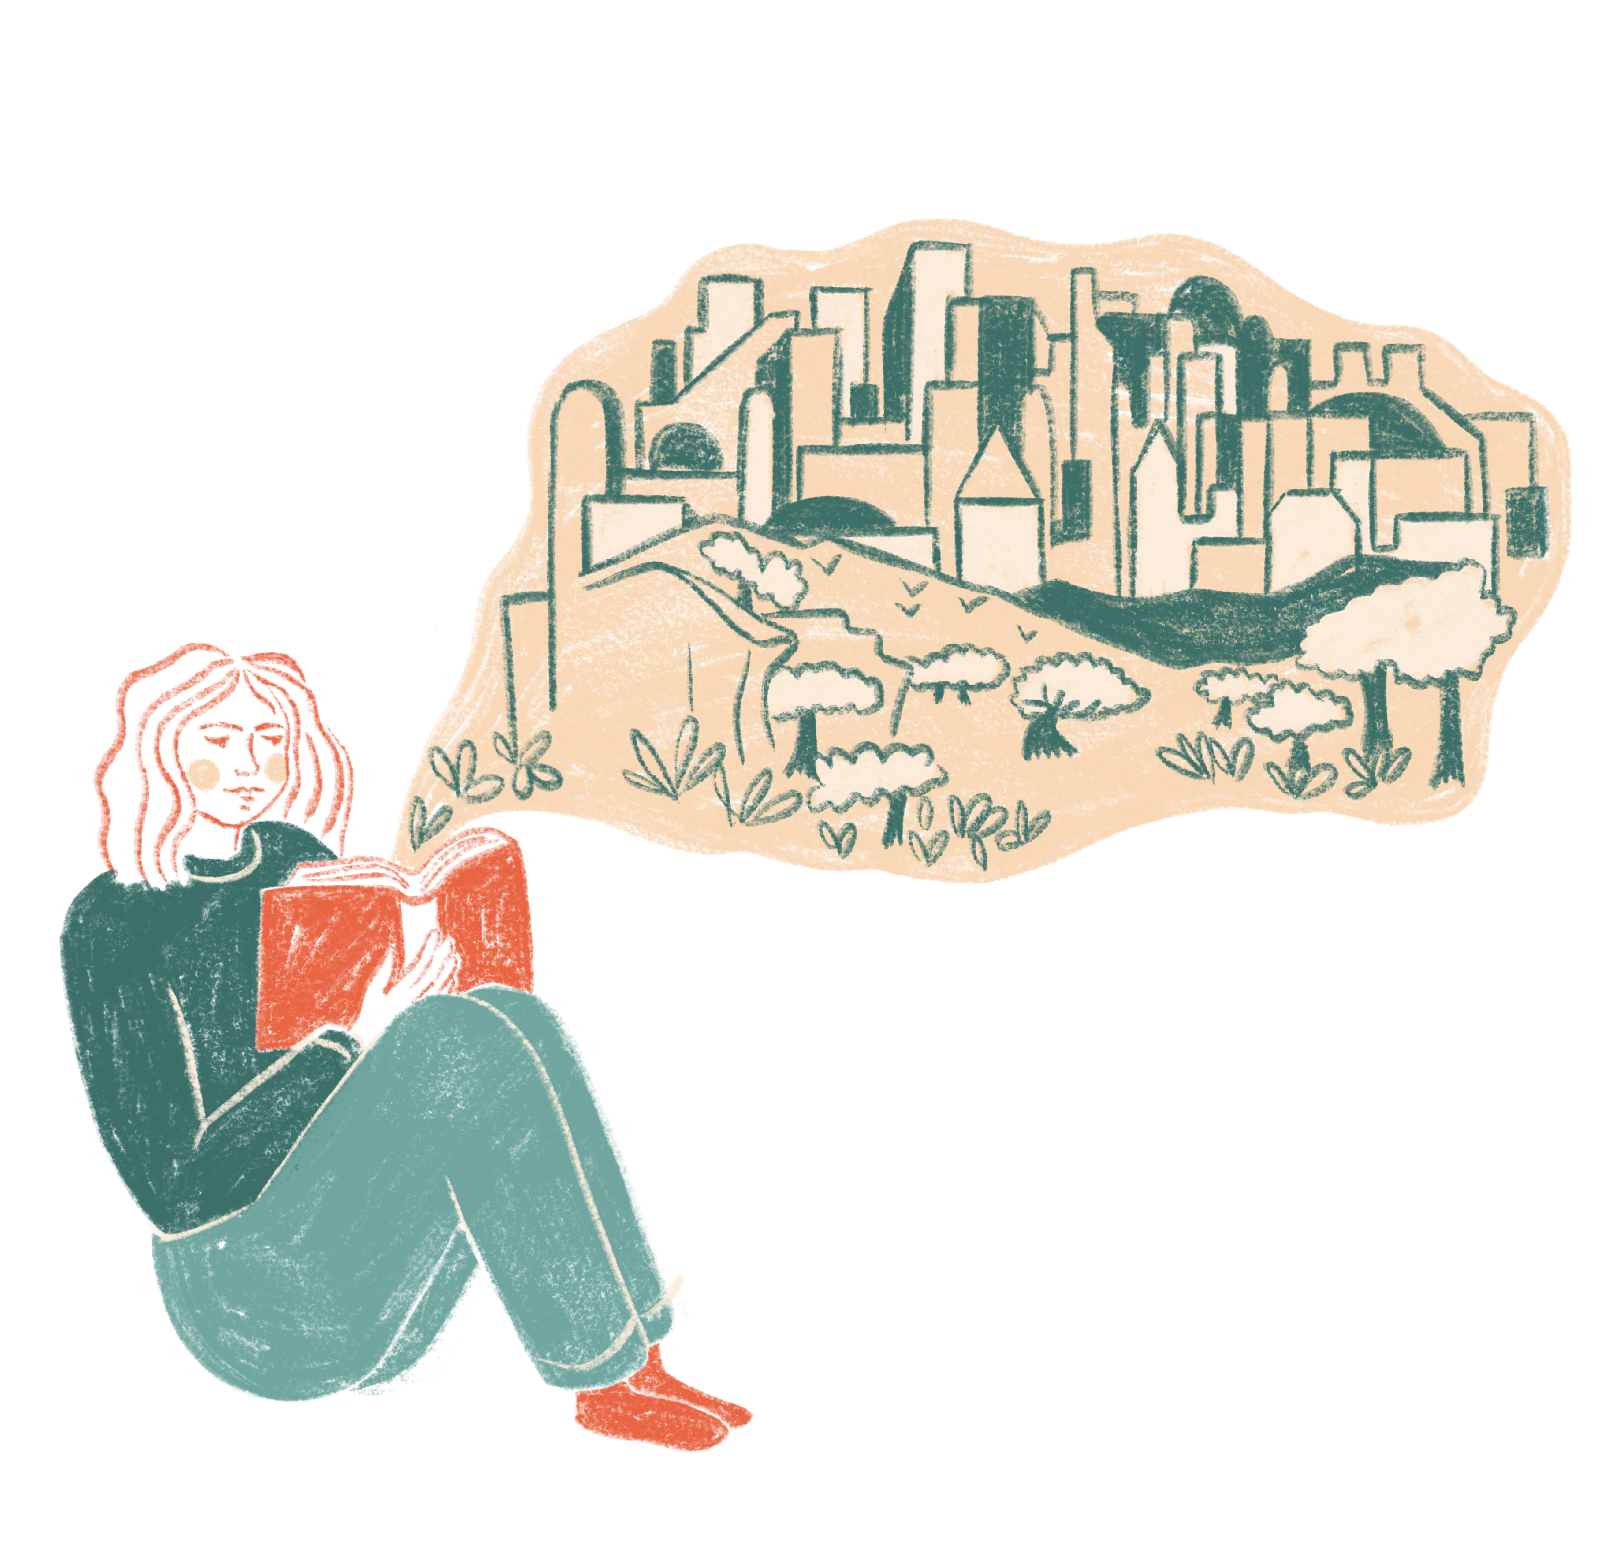 Illustration of a girl reading the Bible with a thought bubble visualising the gardens and cities in the story.